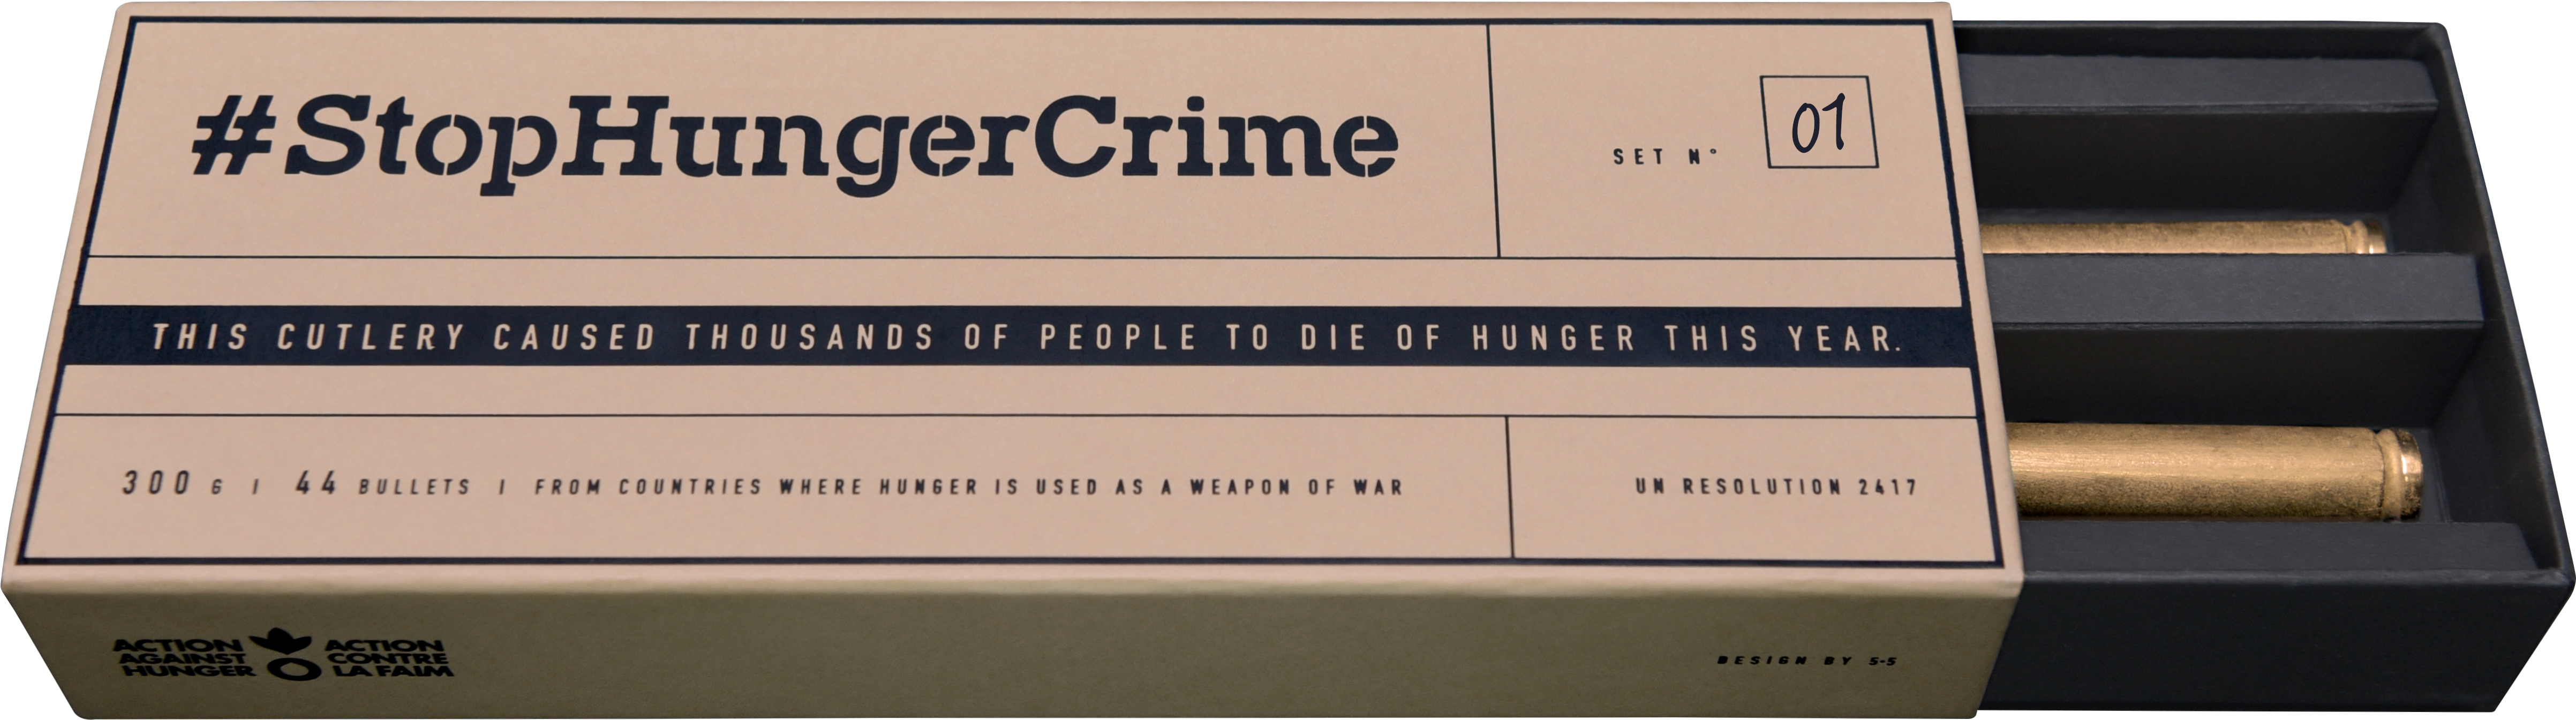 Stop Hunger Crime